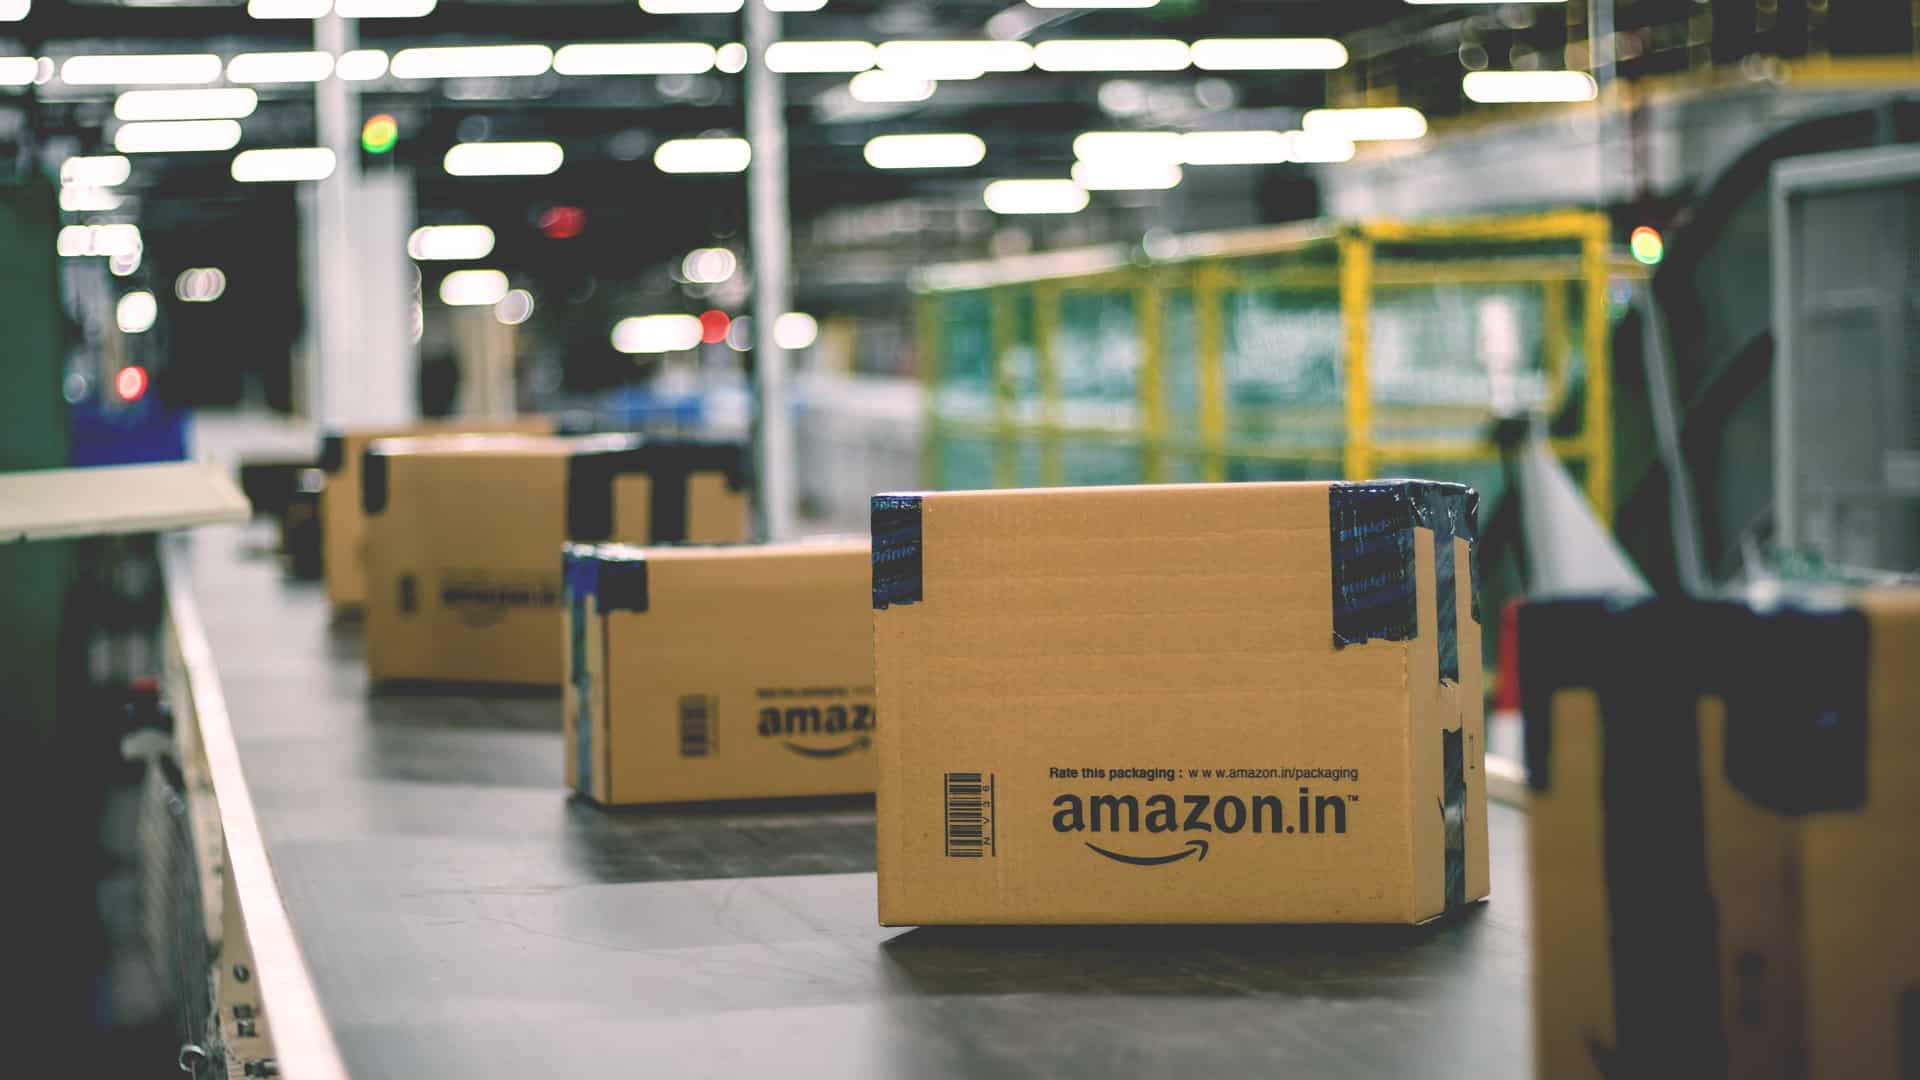 3 lakh sellers onboarded during covid: Amazon after 'East India' barb